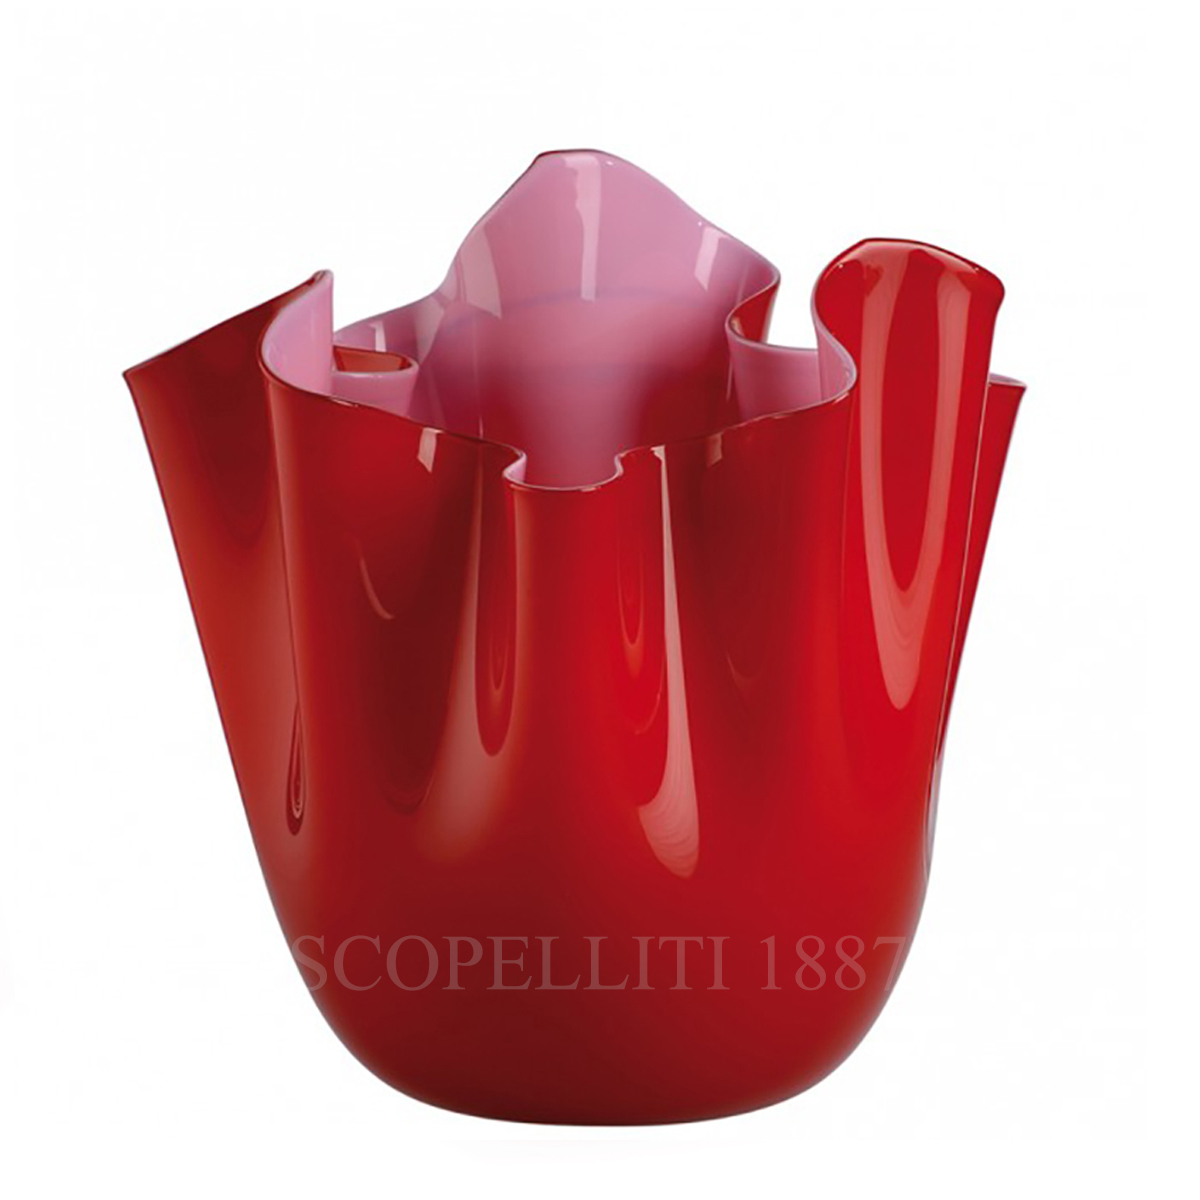 fazzoletto venini murano glass vase red